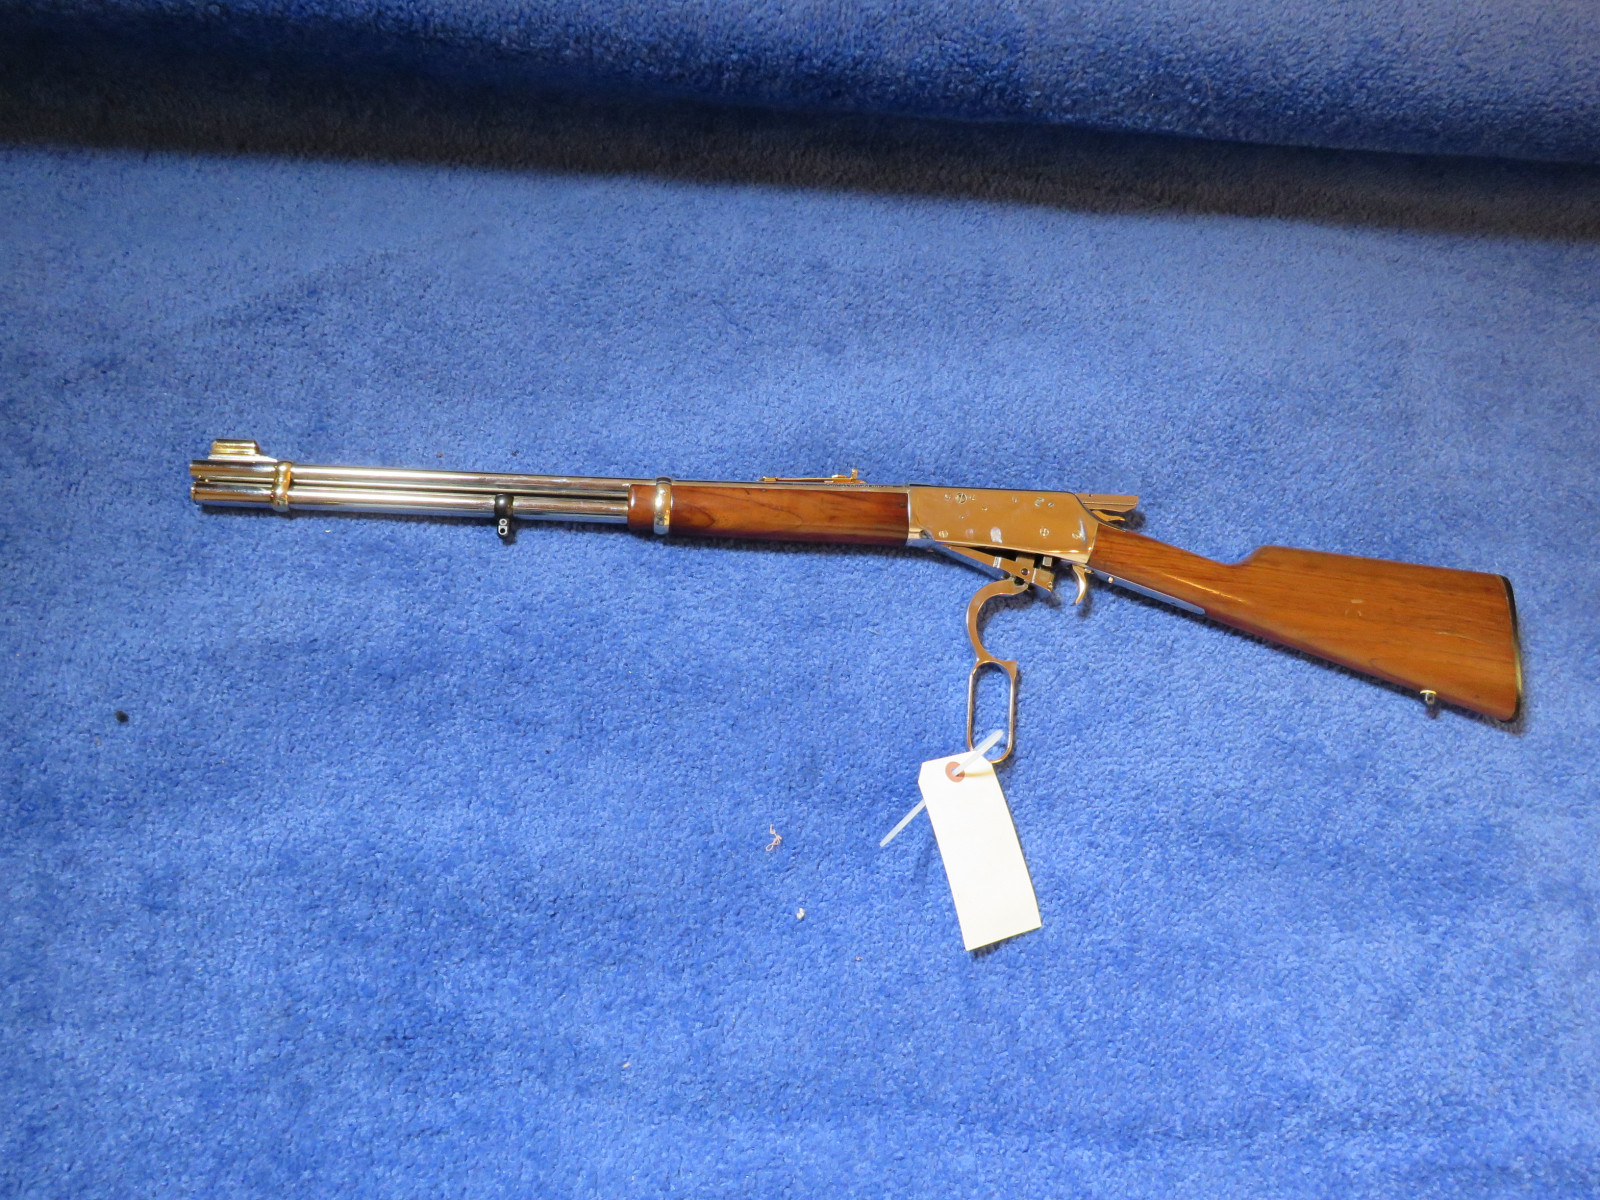 Winchester Model 94 Lever Action .30-.30 Rifle - Image 1